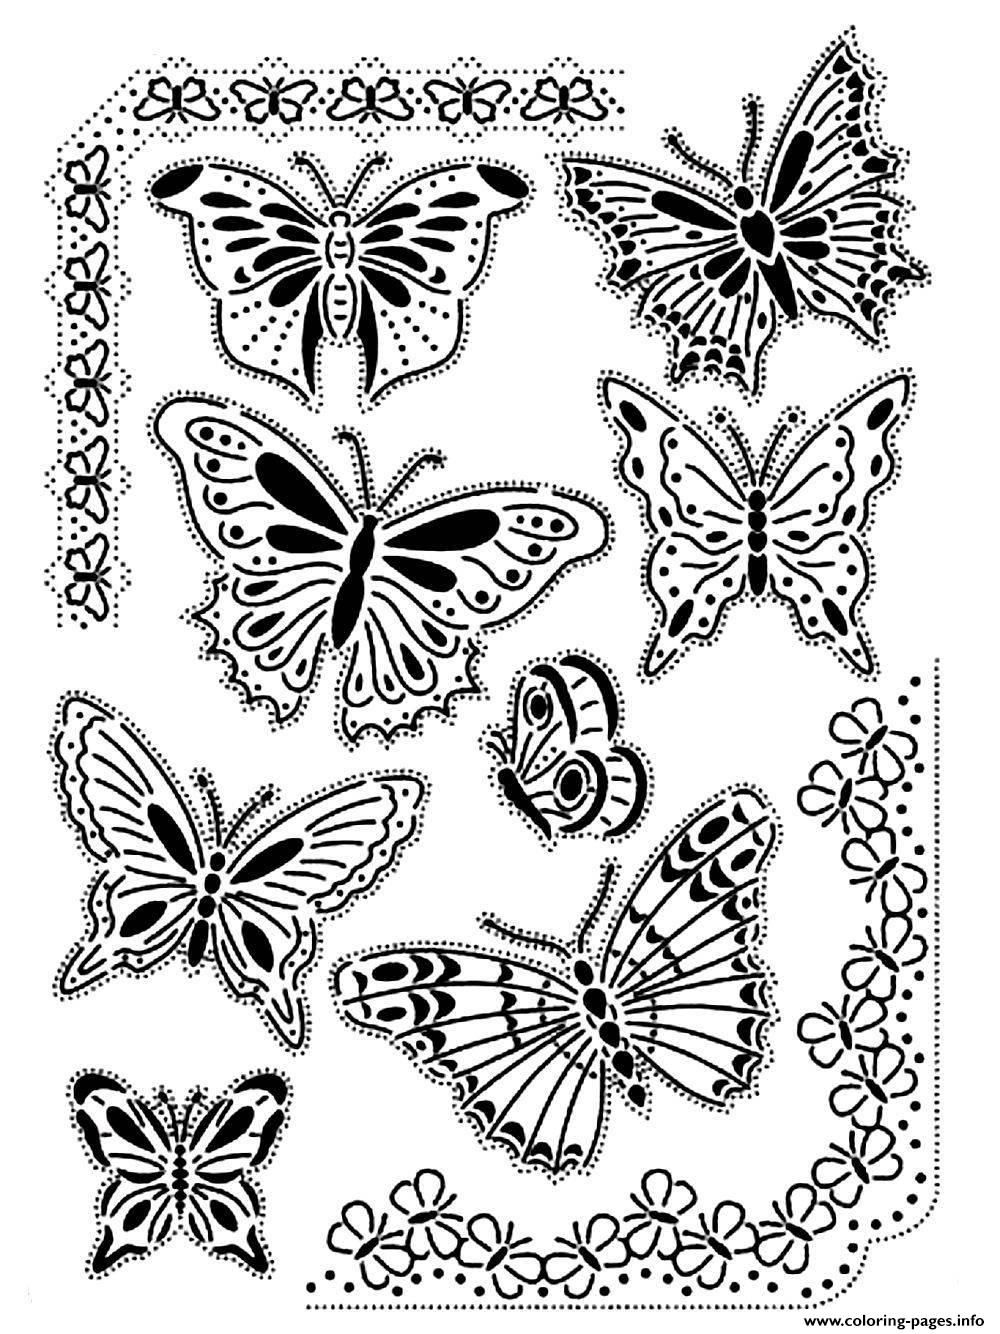 Butterfly coloring page symmetry - 1451454243adult Difficult Butterflies Vintage Jpg 1000 1334 Colouringcoloring